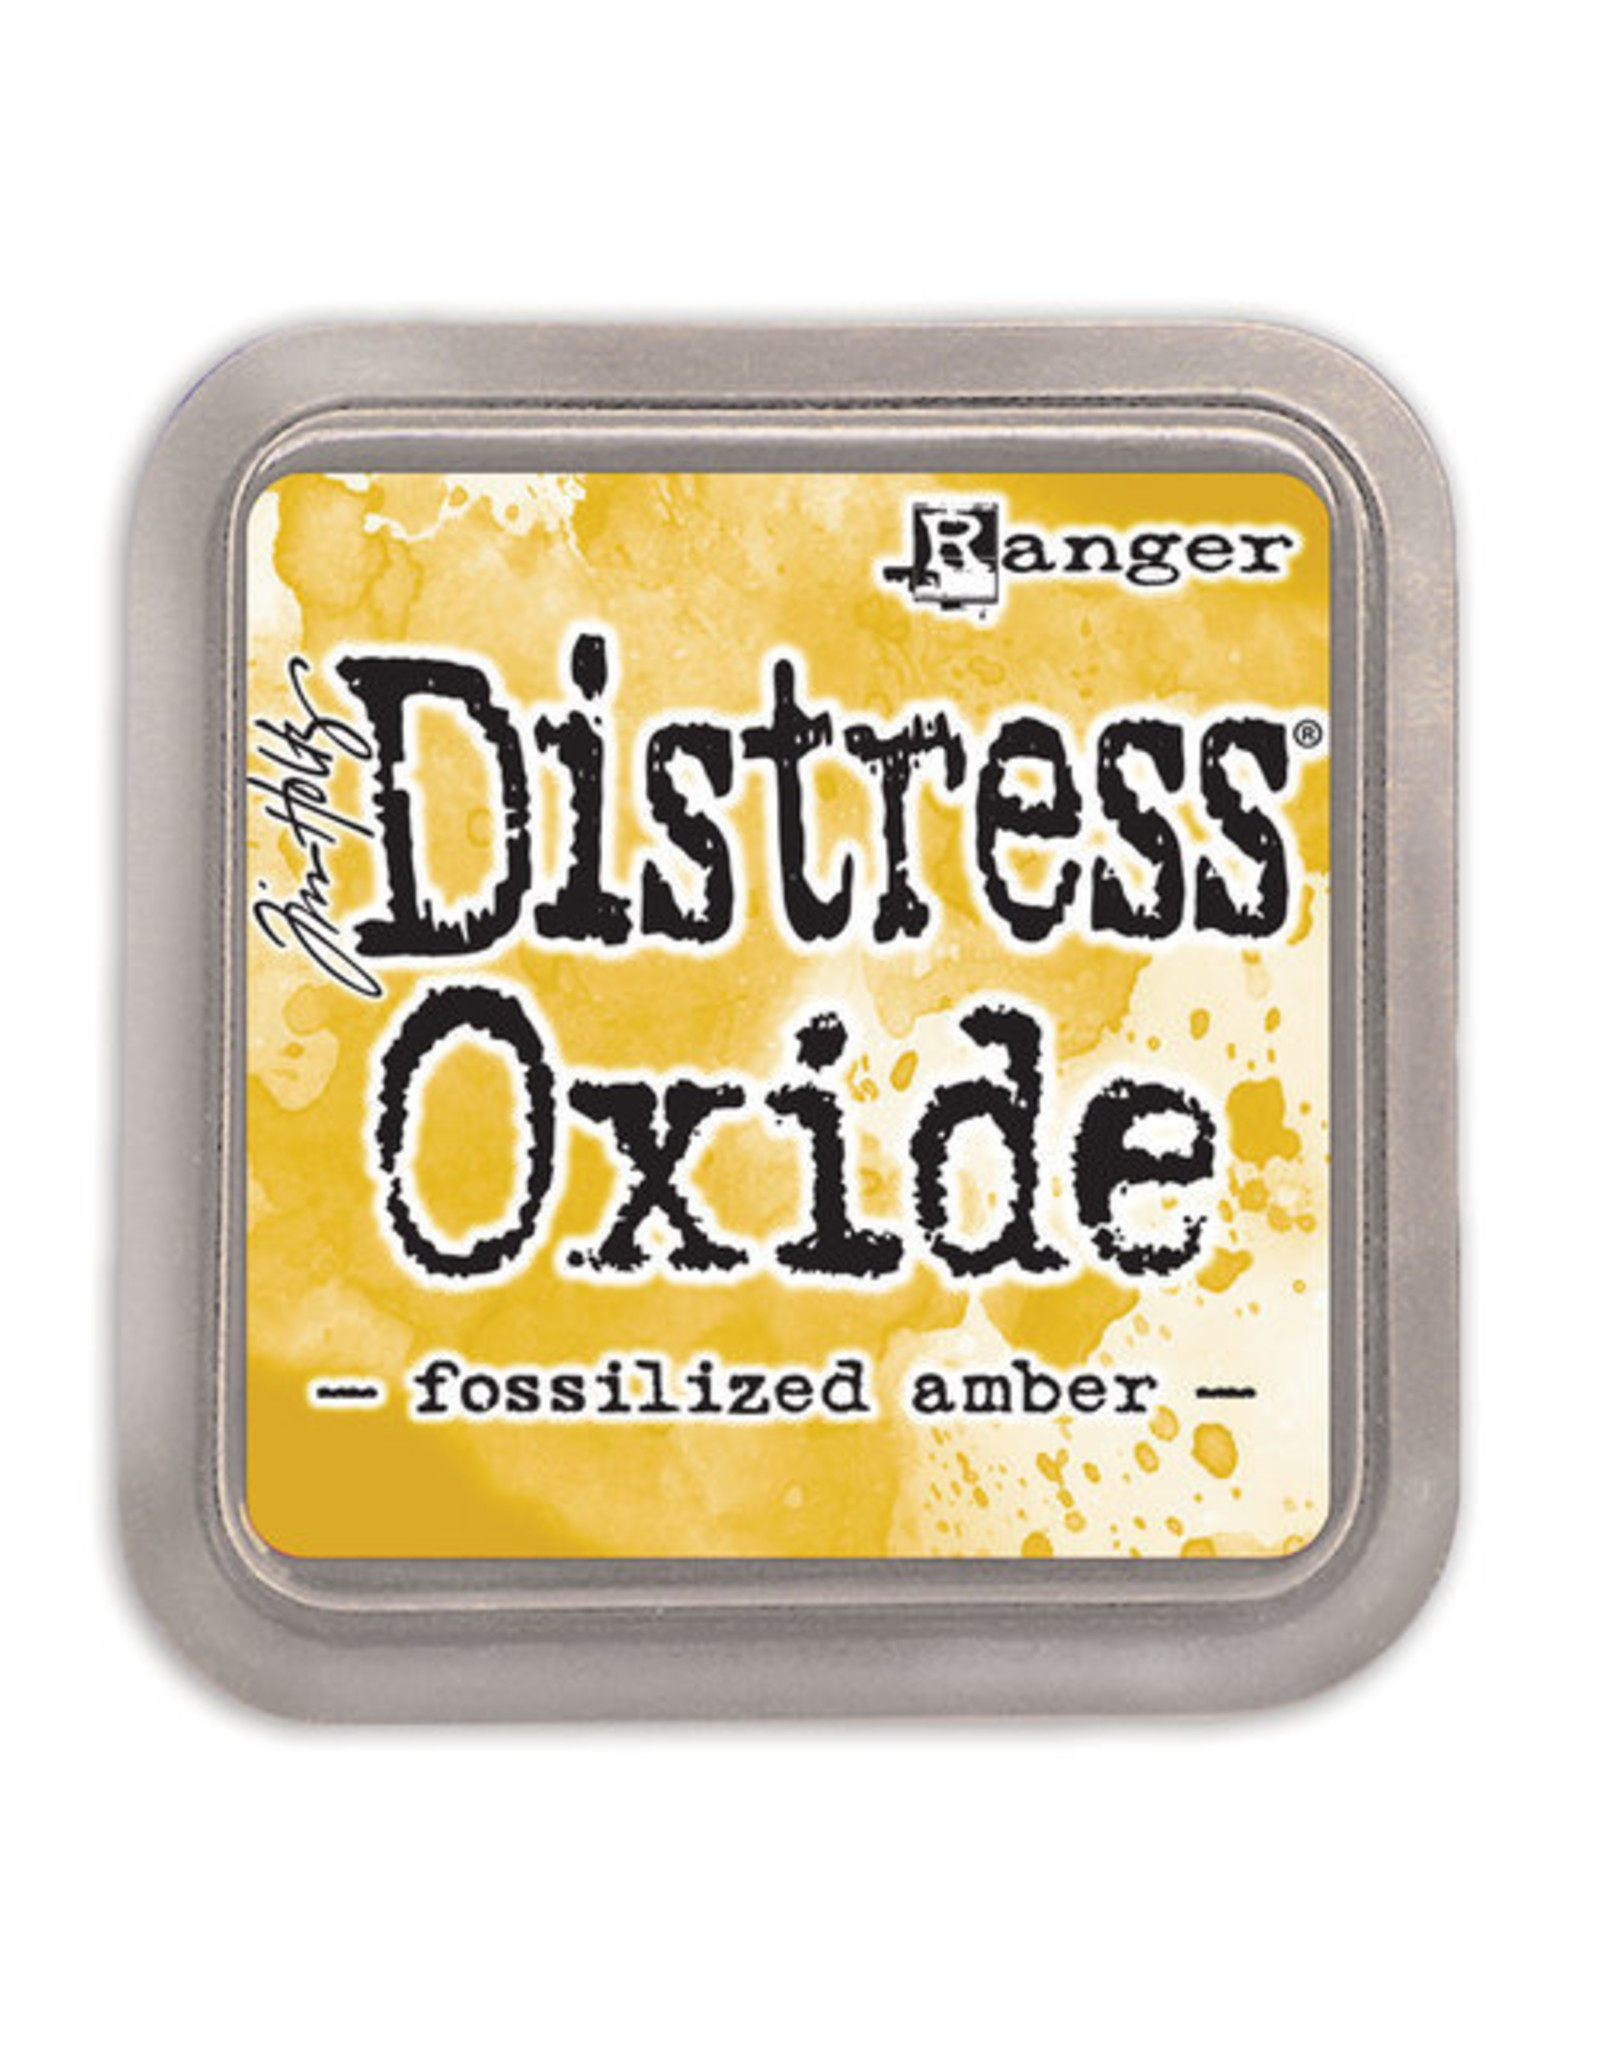 Ranger Distress Oxide Ink Pad - Fossilized Amber